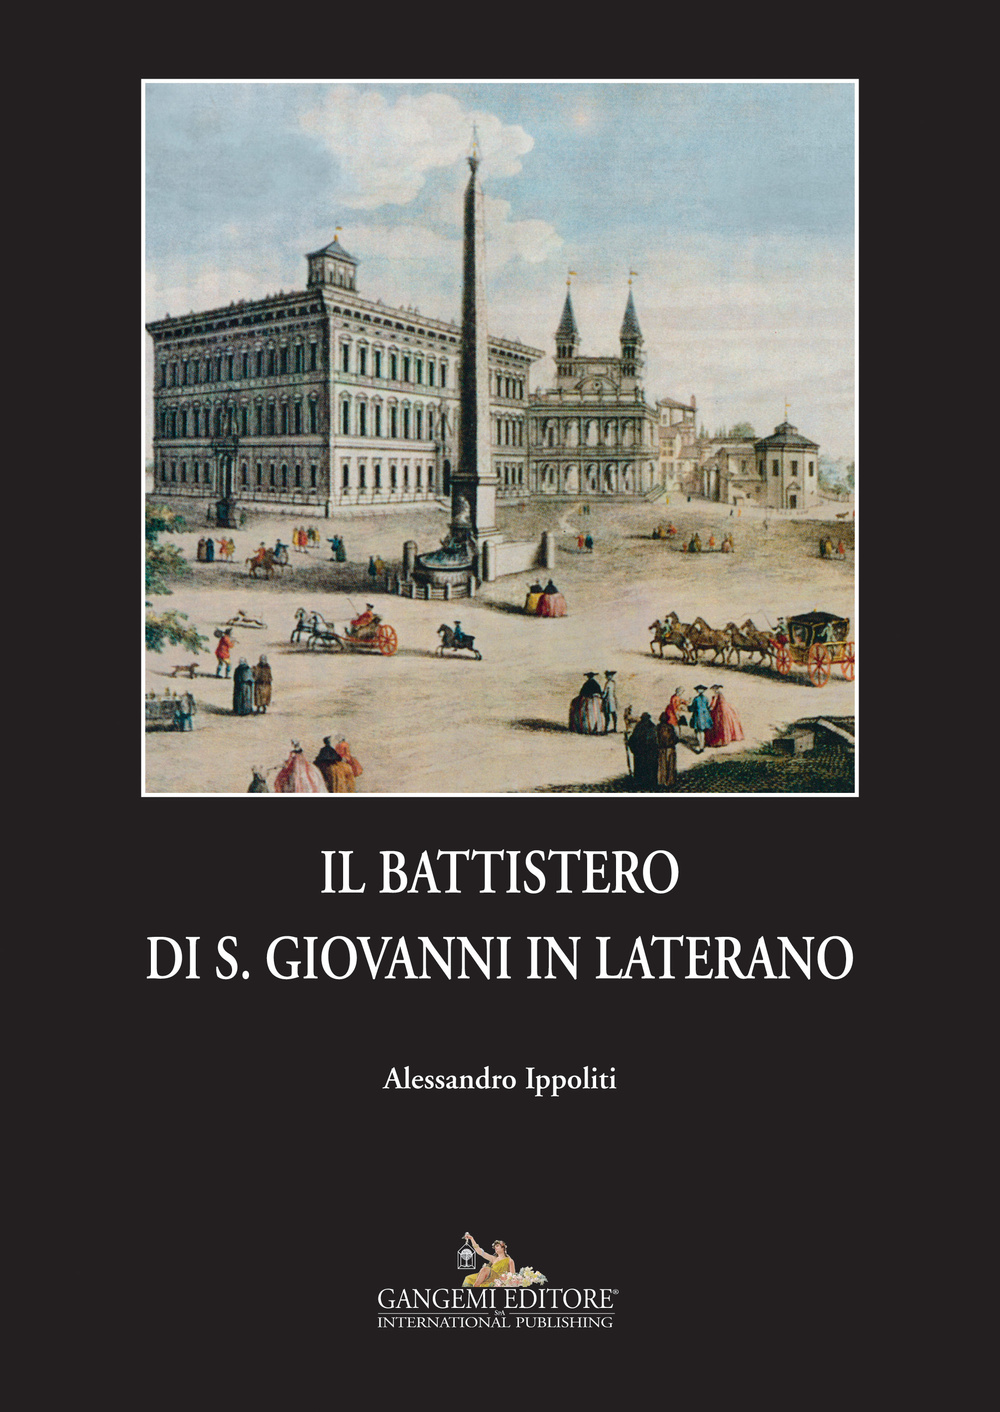 Il battistero di S. Giovanni in Laterano